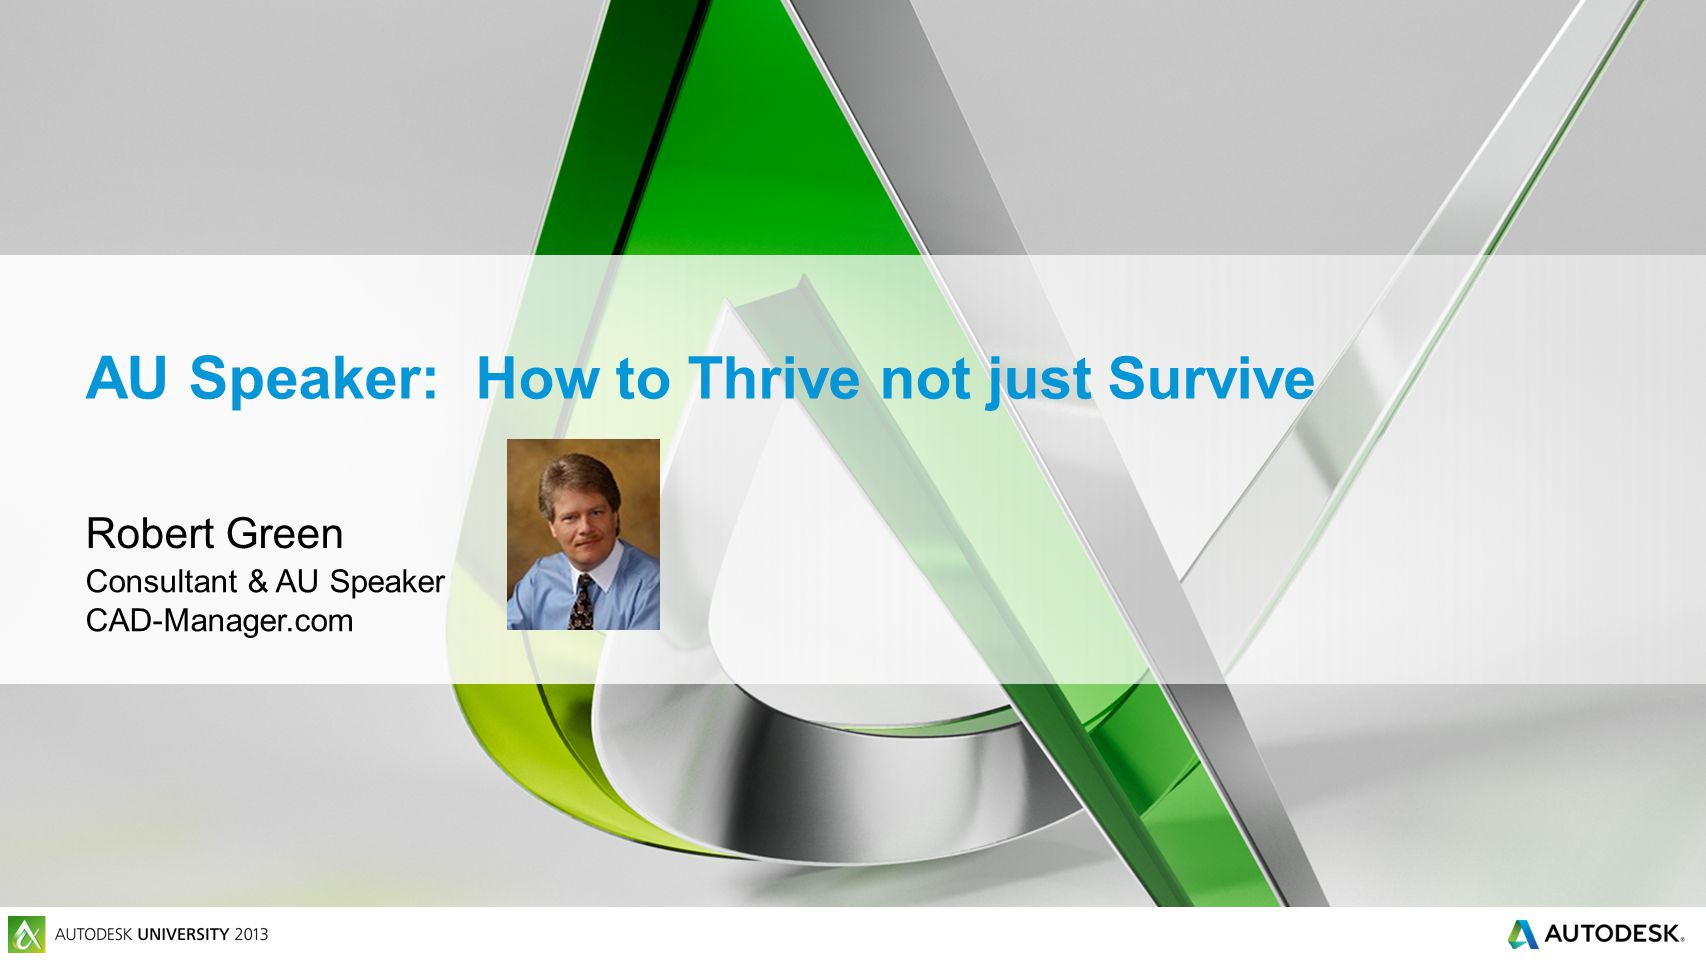 AU Speaker: How to Thrive not just Survive Robert Green Consultant & AU Speaker CAD-Manager.com